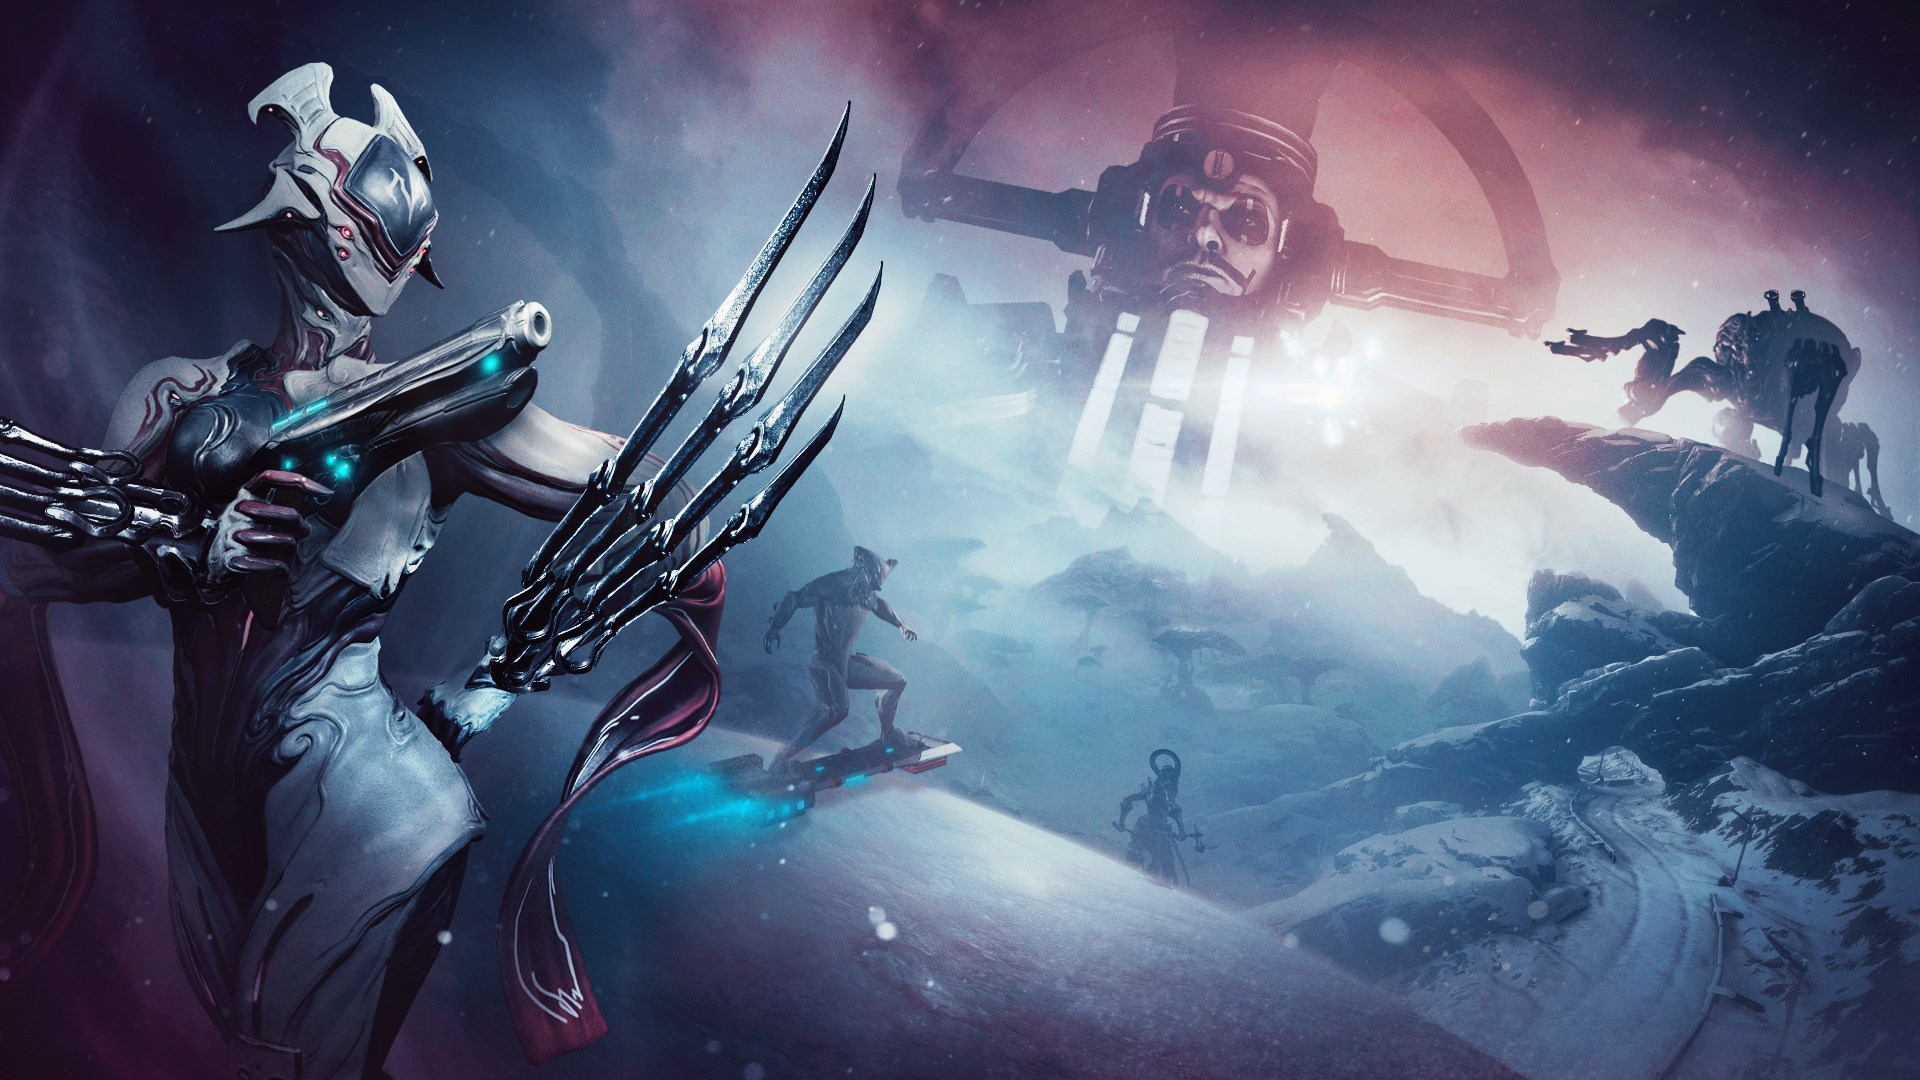 It Is Time To Battle Your Immortal Nemesis In Warframe's New Update: Old Blood, A New Warframe And Melee Combat Phase 2 Have Both Been Released